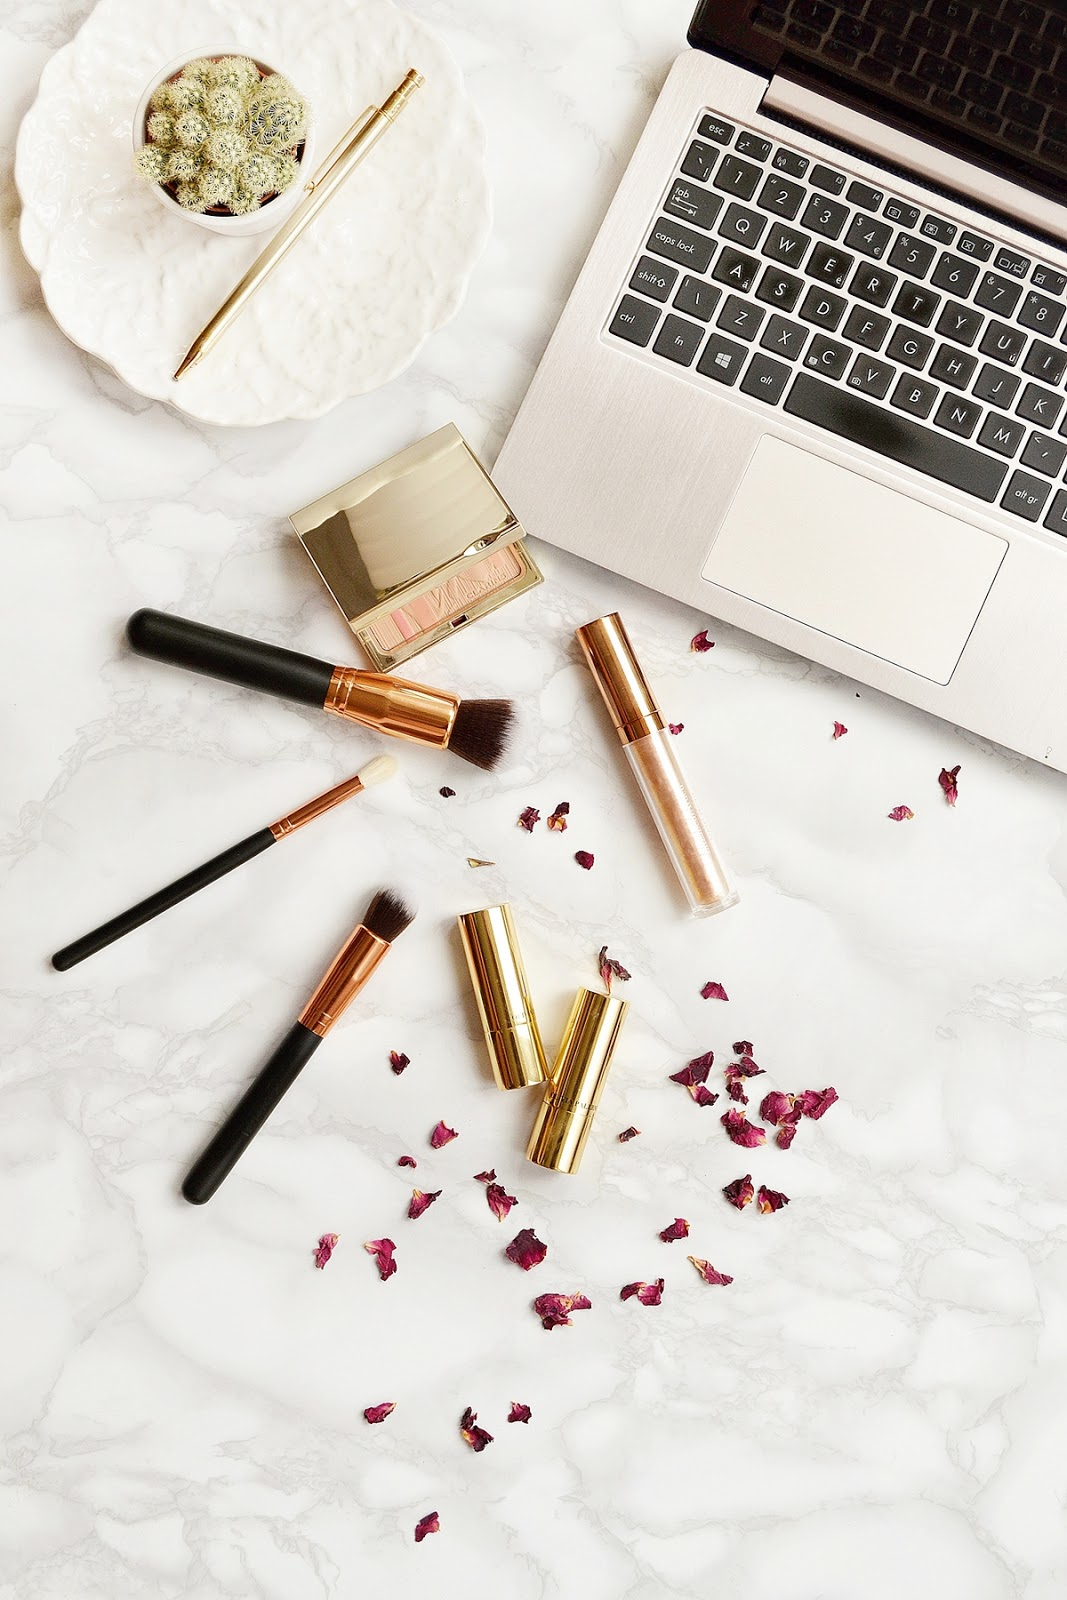 free-makeup-stock-images